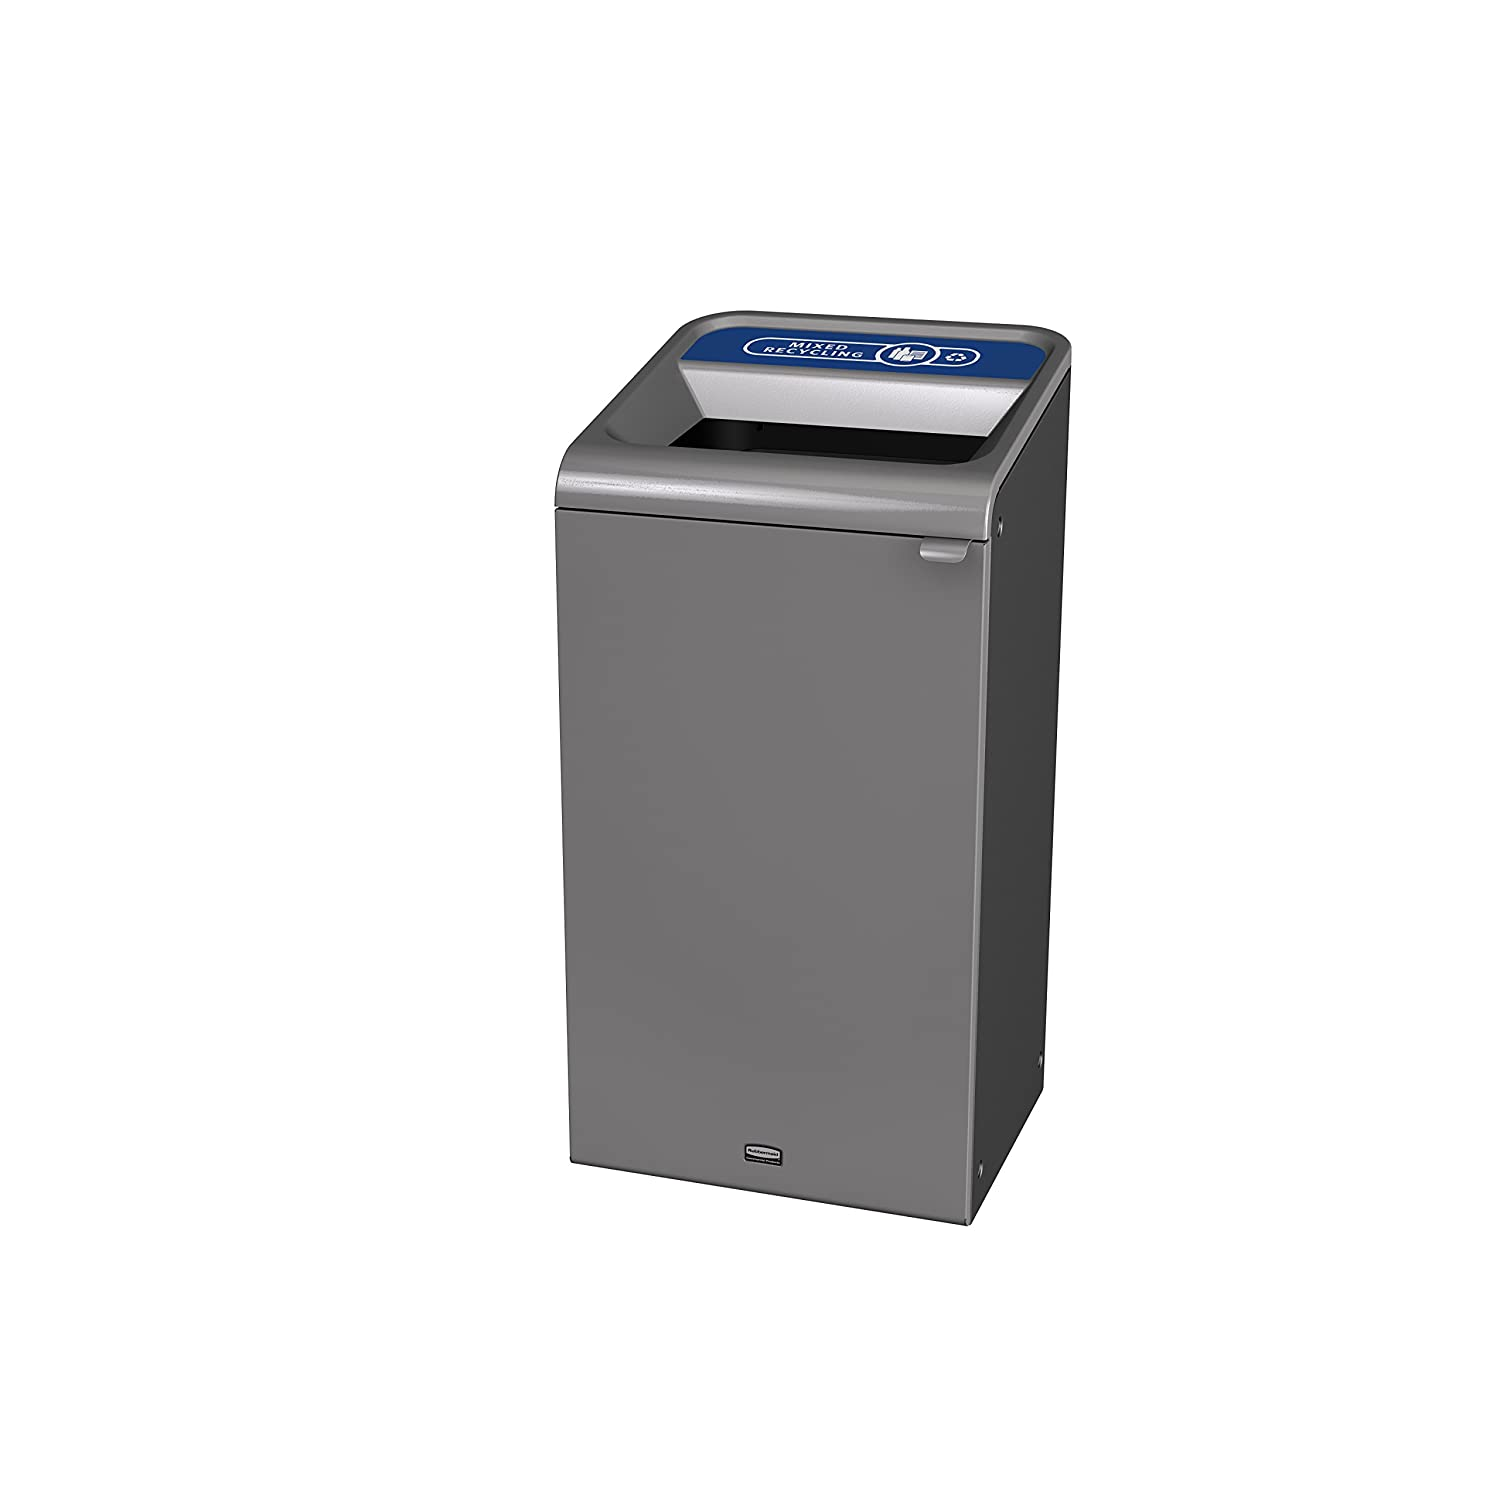 Rubbermaid Commercial Products 1961622 Configure Waste Receptacle Mixed Recycling Can, 23 gal, Grey Stenni